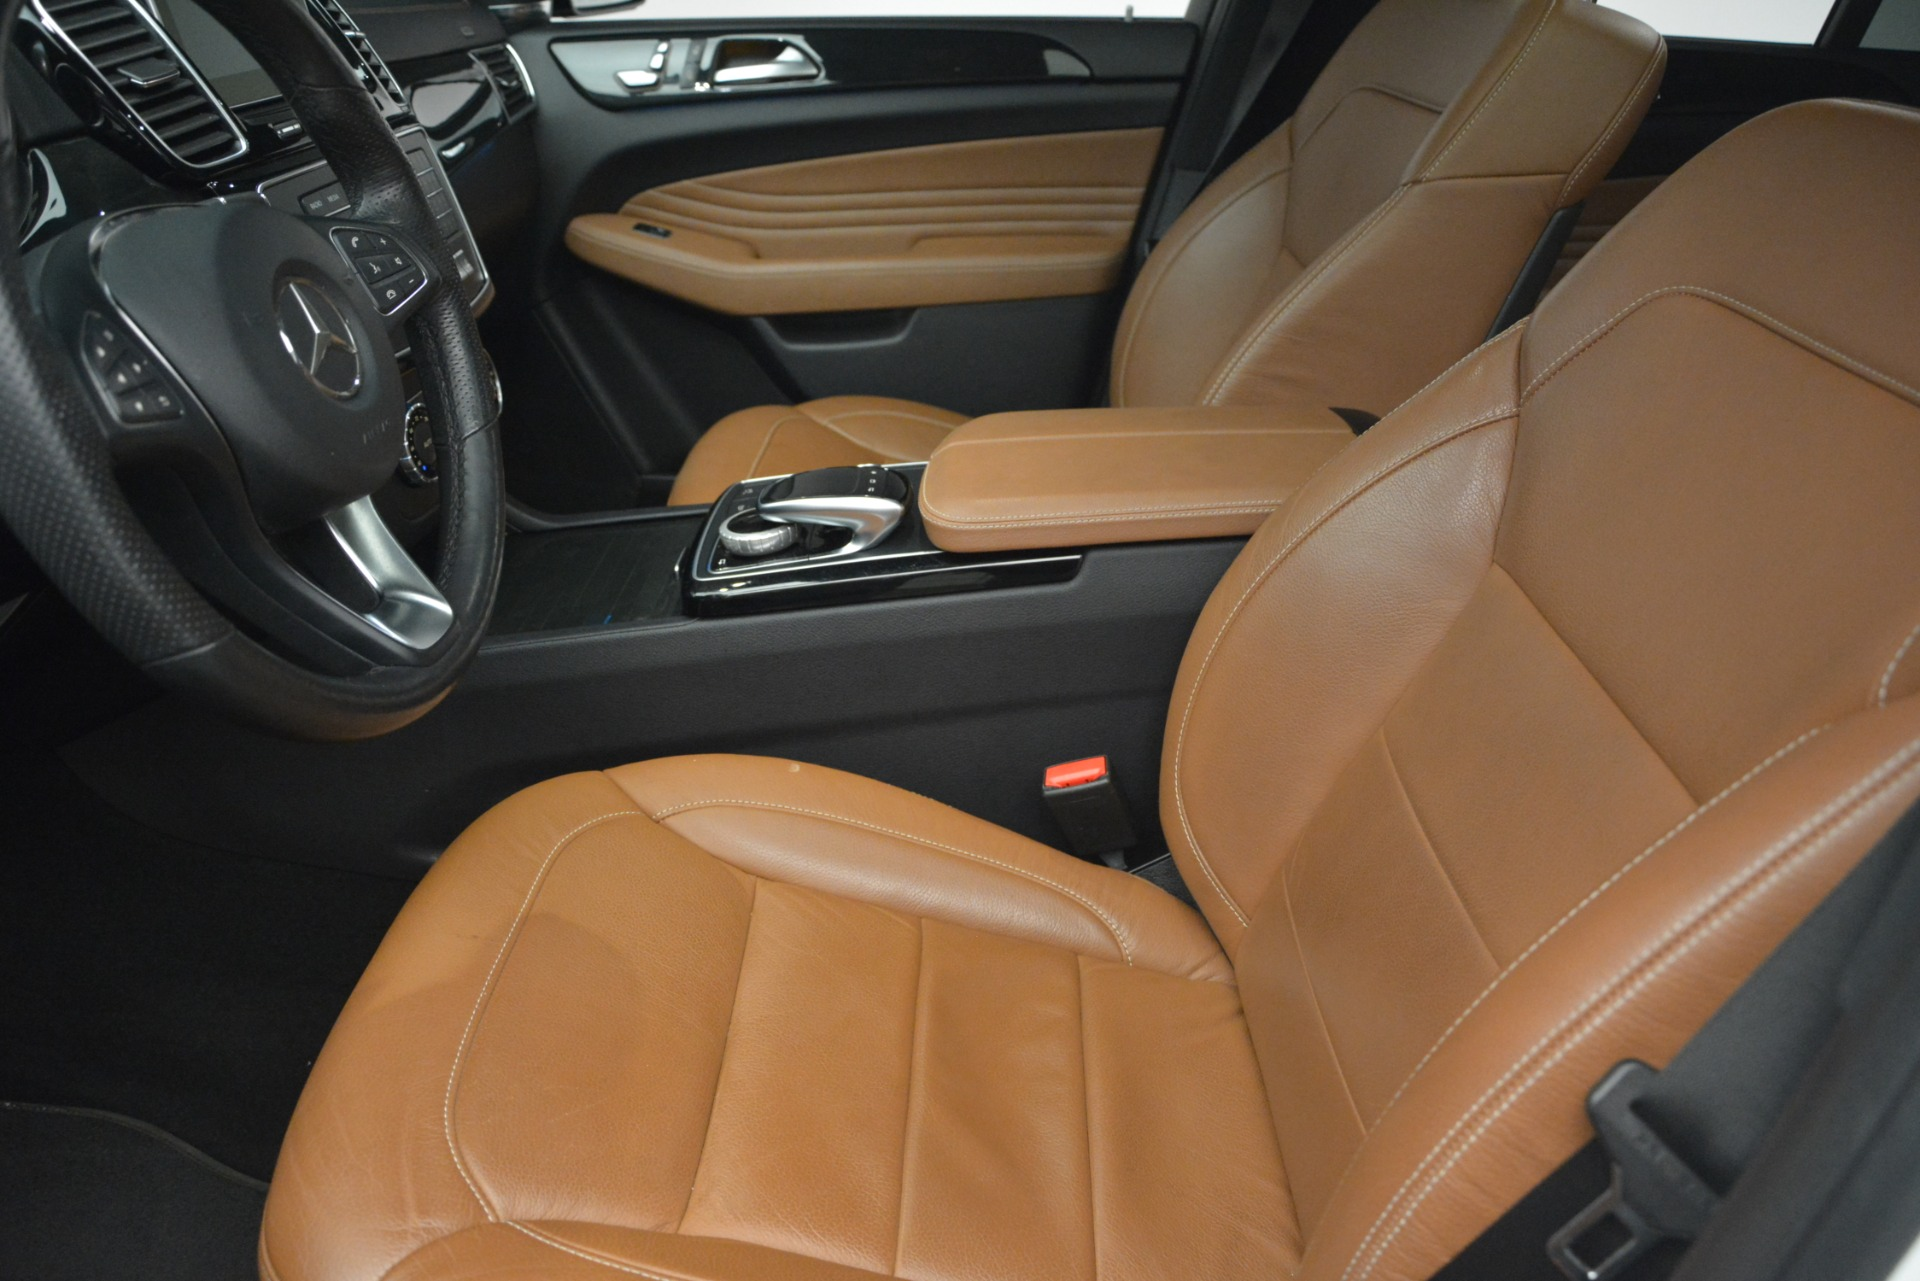 Used 2016 Mercedes-Benz GLE 450 AMG Coupe 4MATIC For Sale In Greenwich, CT 2787_p14